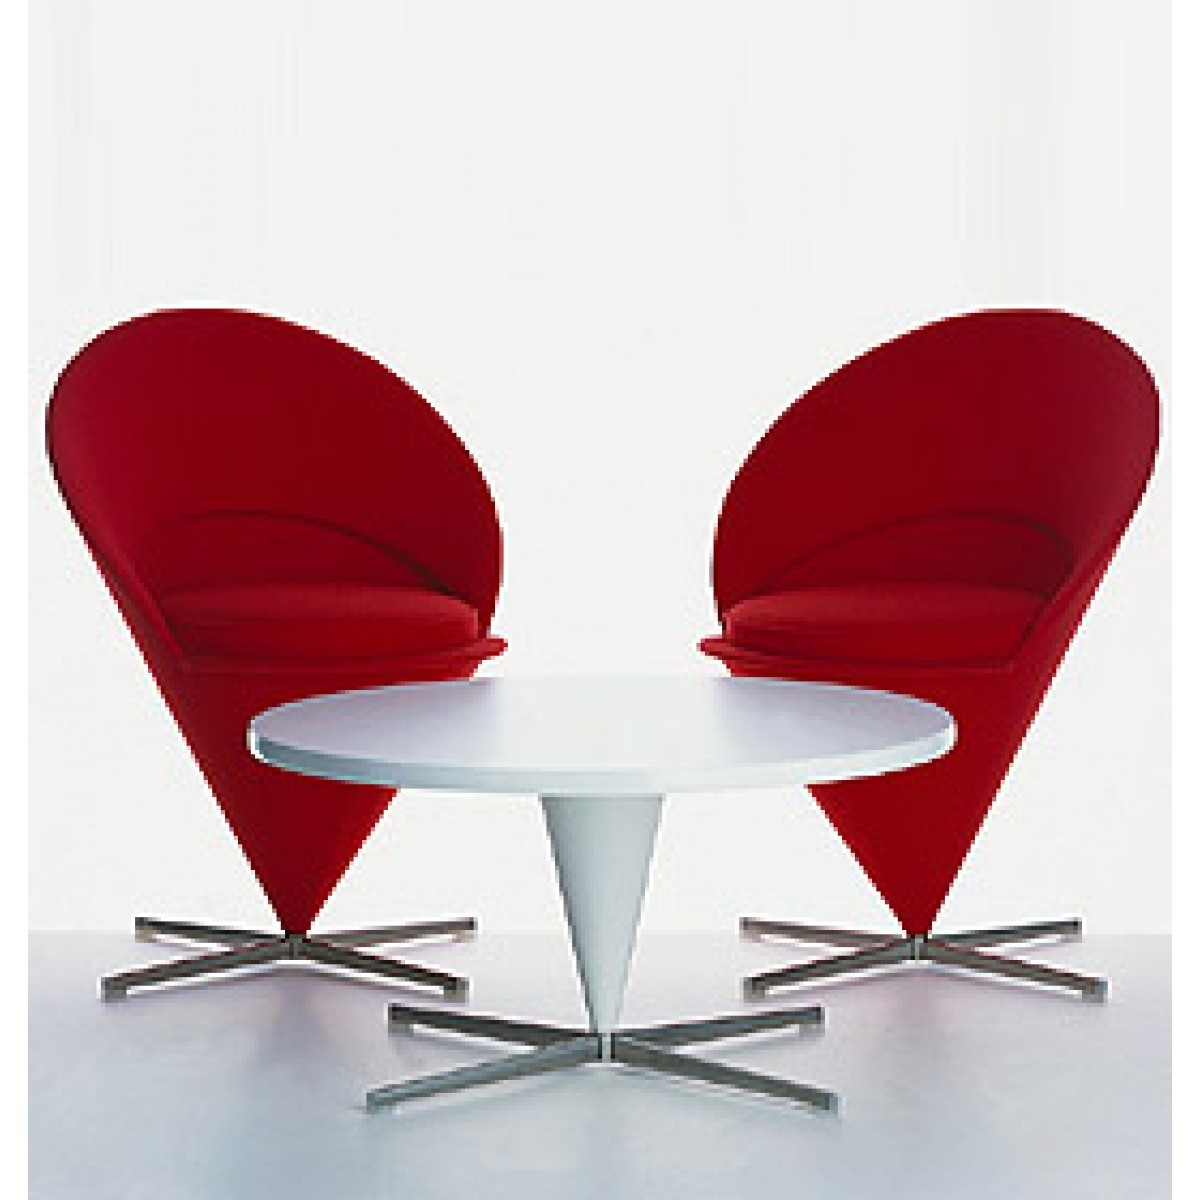 Vitra Sessel Vitra Cone Chair Sessel